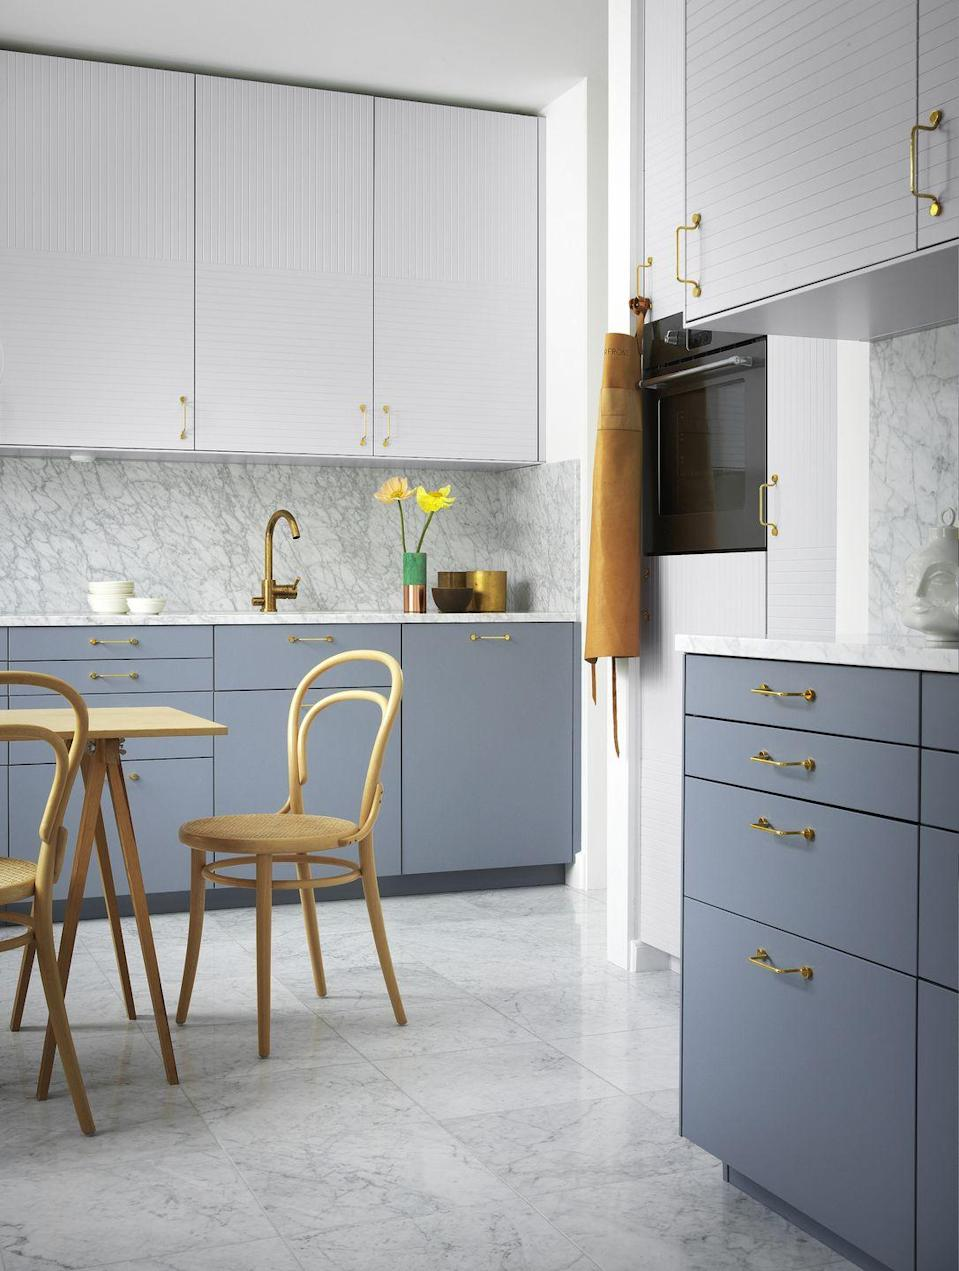 """<p>Replacing cabinet fronts is a clever and inexpensive way to give your kitchen an uplift. Firms such as Custom Fronts, Plykea and Superfront offer designs tailored specifically to Ikea cabinetry, while Husk has fronts for Ikea cabinets, as well as Howdens.</p><p>Pictured: Parallel fronts in Ashton Grey; No Pattern fronts in Cloudy Grey, <a href=""""https://superfront.com/uk/"""" rel=""""nofollow noopener"""" target=""""_blank"""" data-ylk=""""slk:Superfront"""" class=""""link rapid-noclick-resp"""">Superfront</a></p>"""